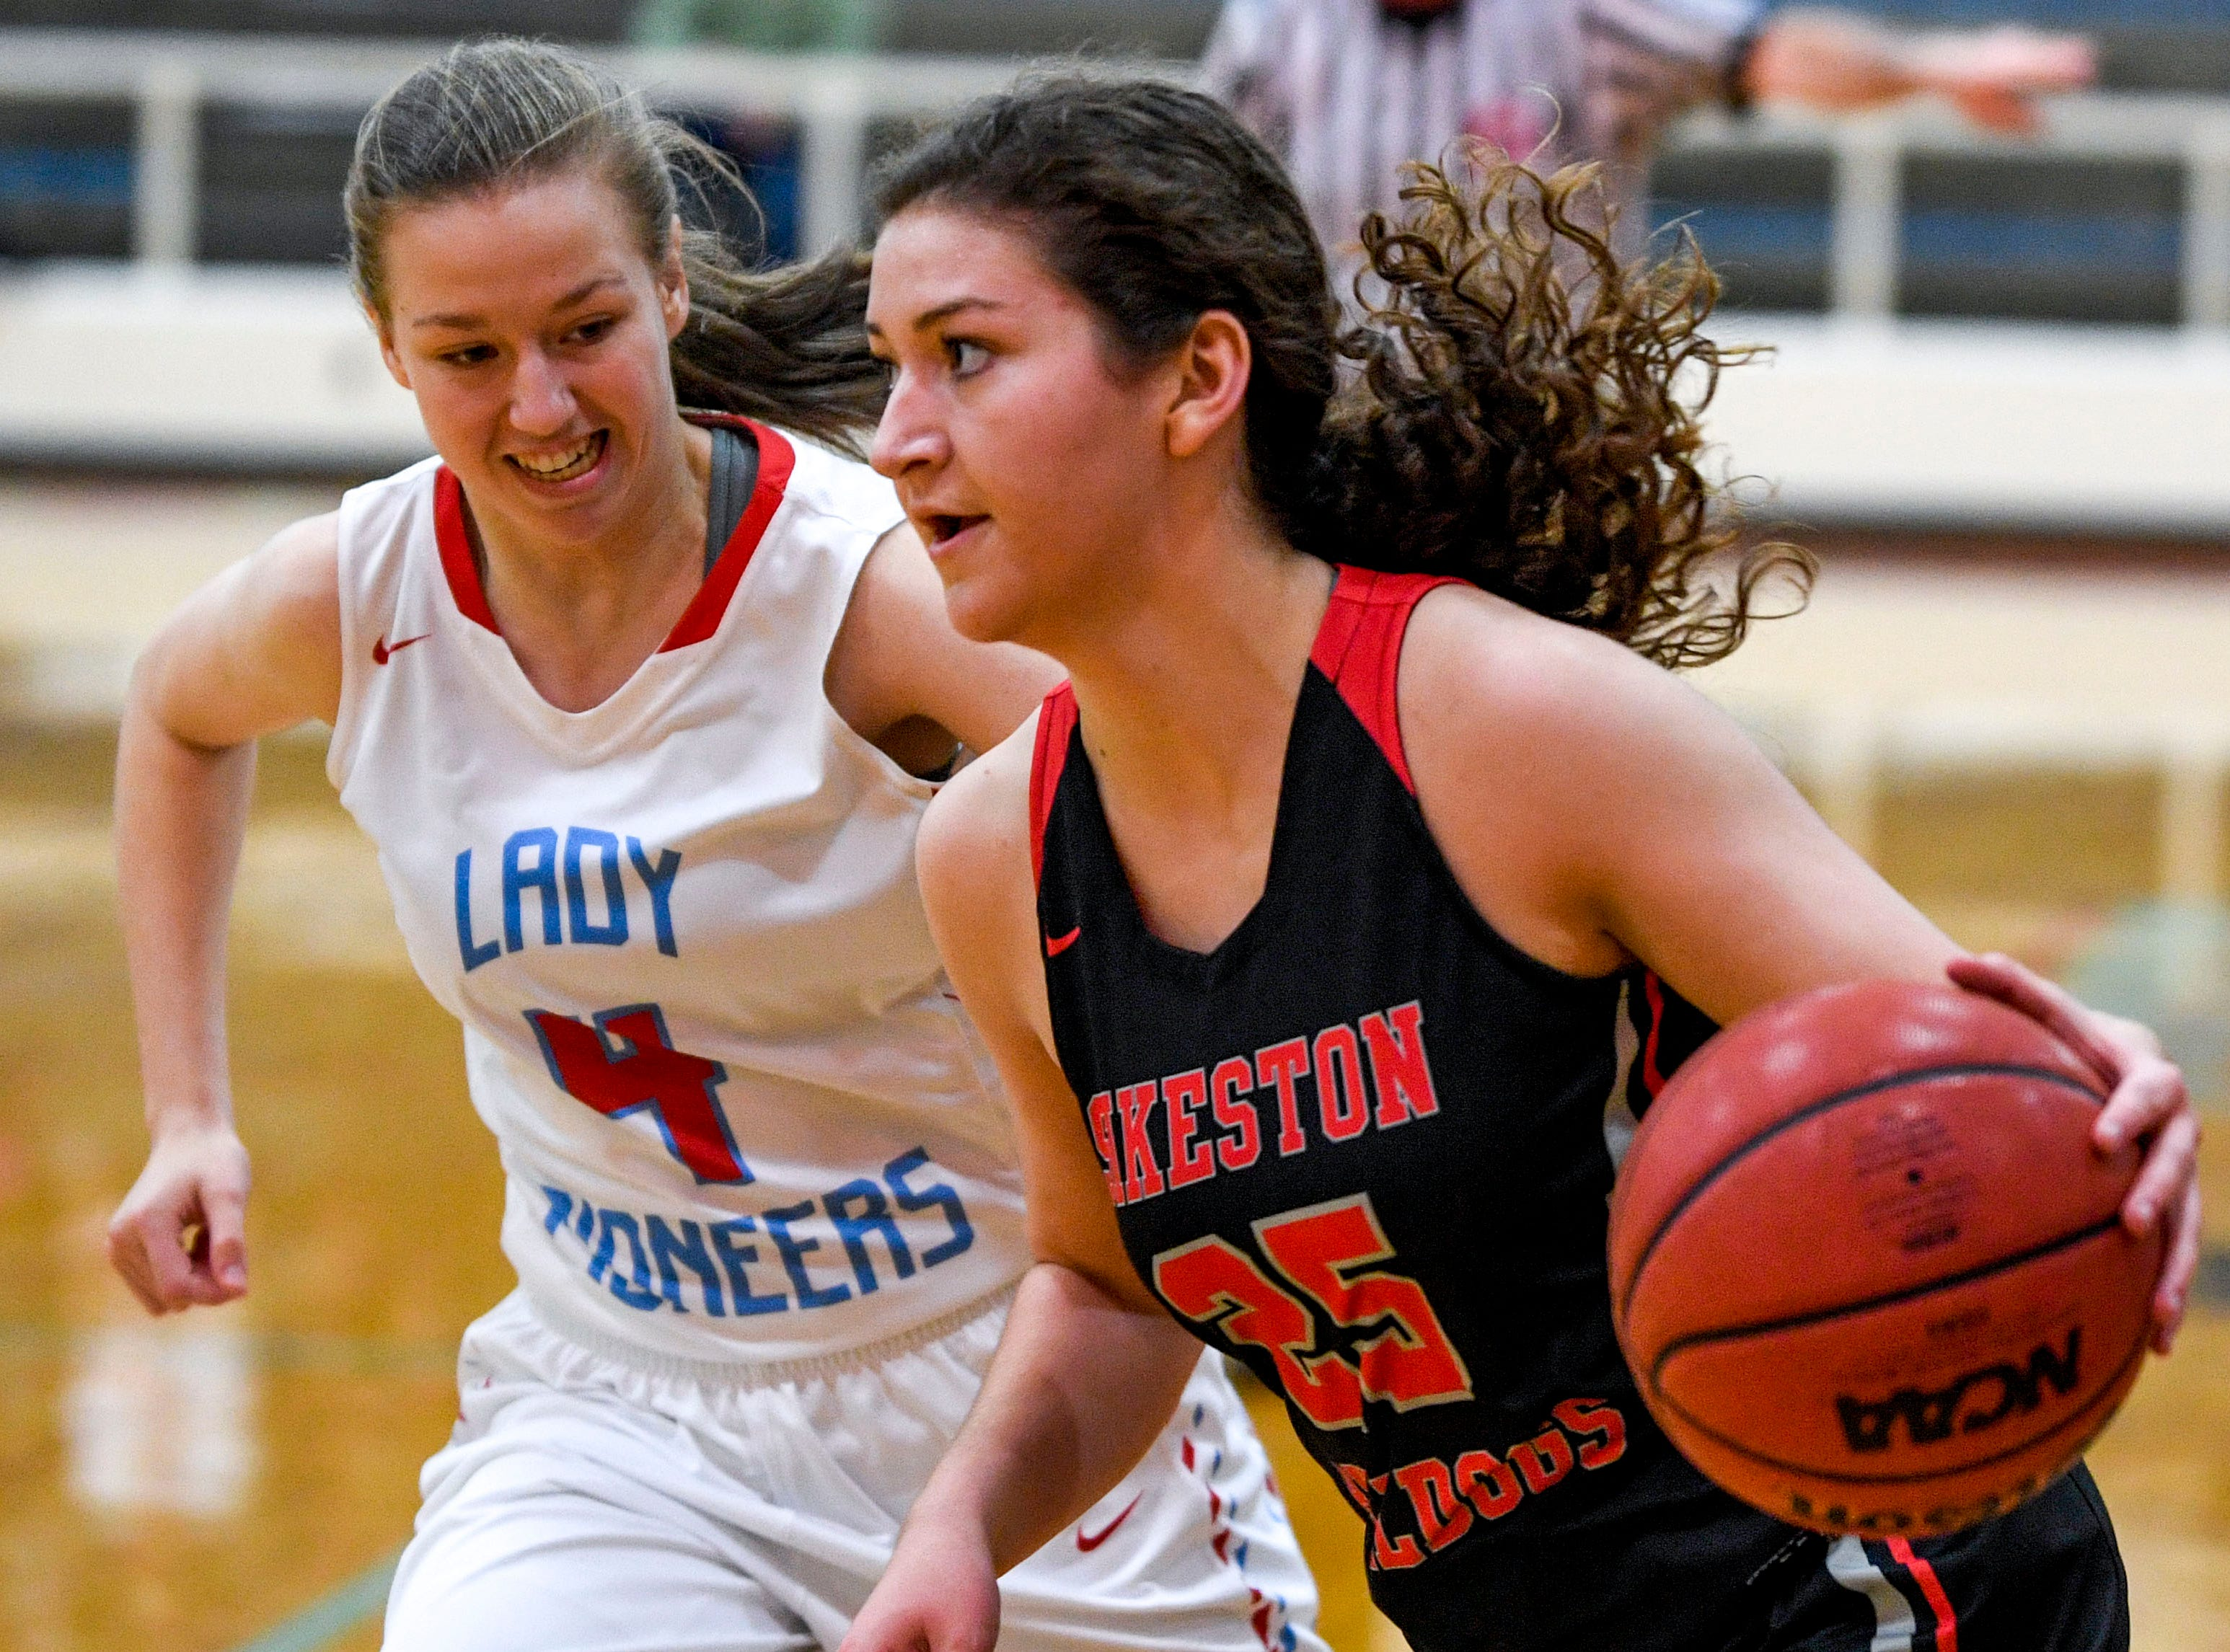 Sikeston's Sydney Stark (25) moves down the court with Gibson County' Annie Bass (4) right on her tail in a TSSAA girls basketball game between Gibson County and Sikeston (MO) in the Gibson County Christmas Tournament at Gibson County High School in Dyer, Tenn., on Thursday, Dec. 20, 2018.